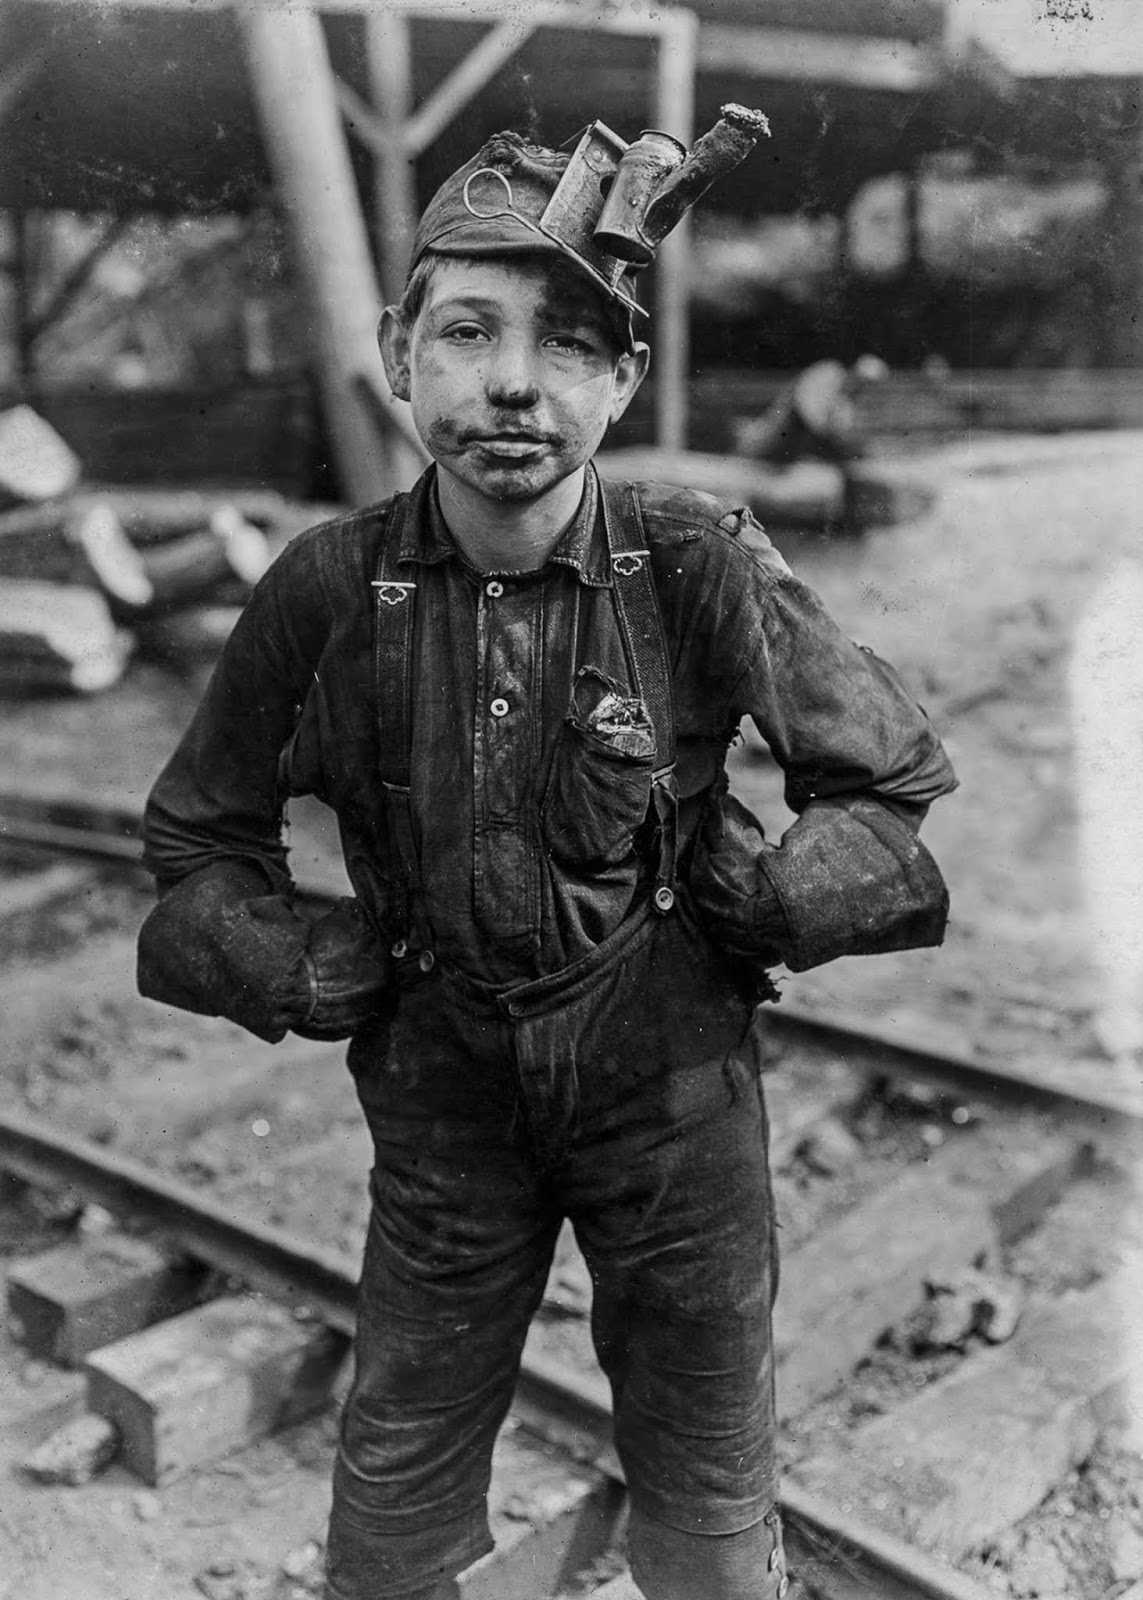 A tipple boy at Turkey Knob Mine in Macdonald, West Virginia. 1908.